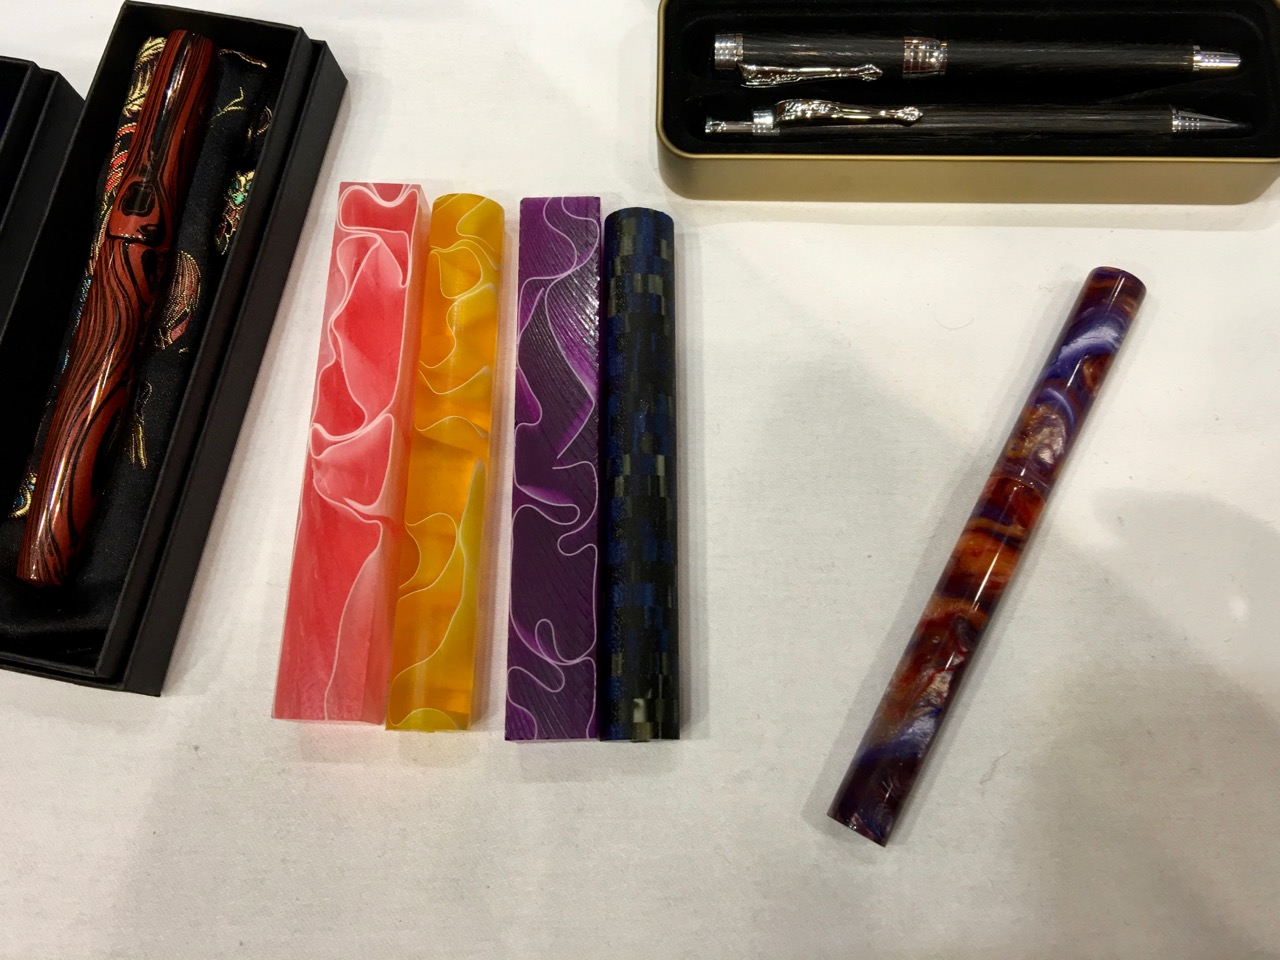 Twiss Pens table and some of the acrylic rods - gorgeous!